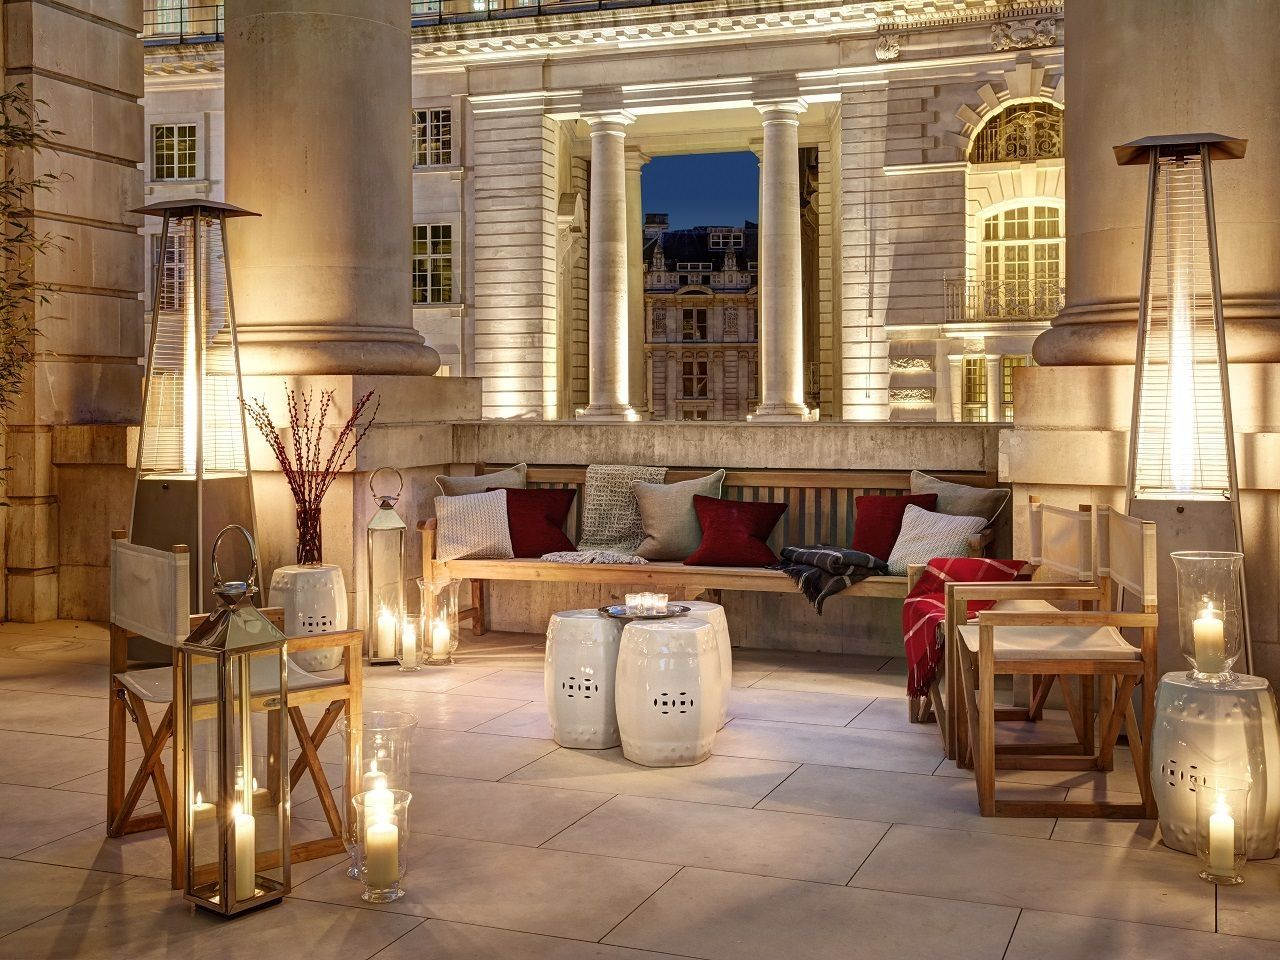 pompadour ballroom terrace hotel cafe royal regent street london